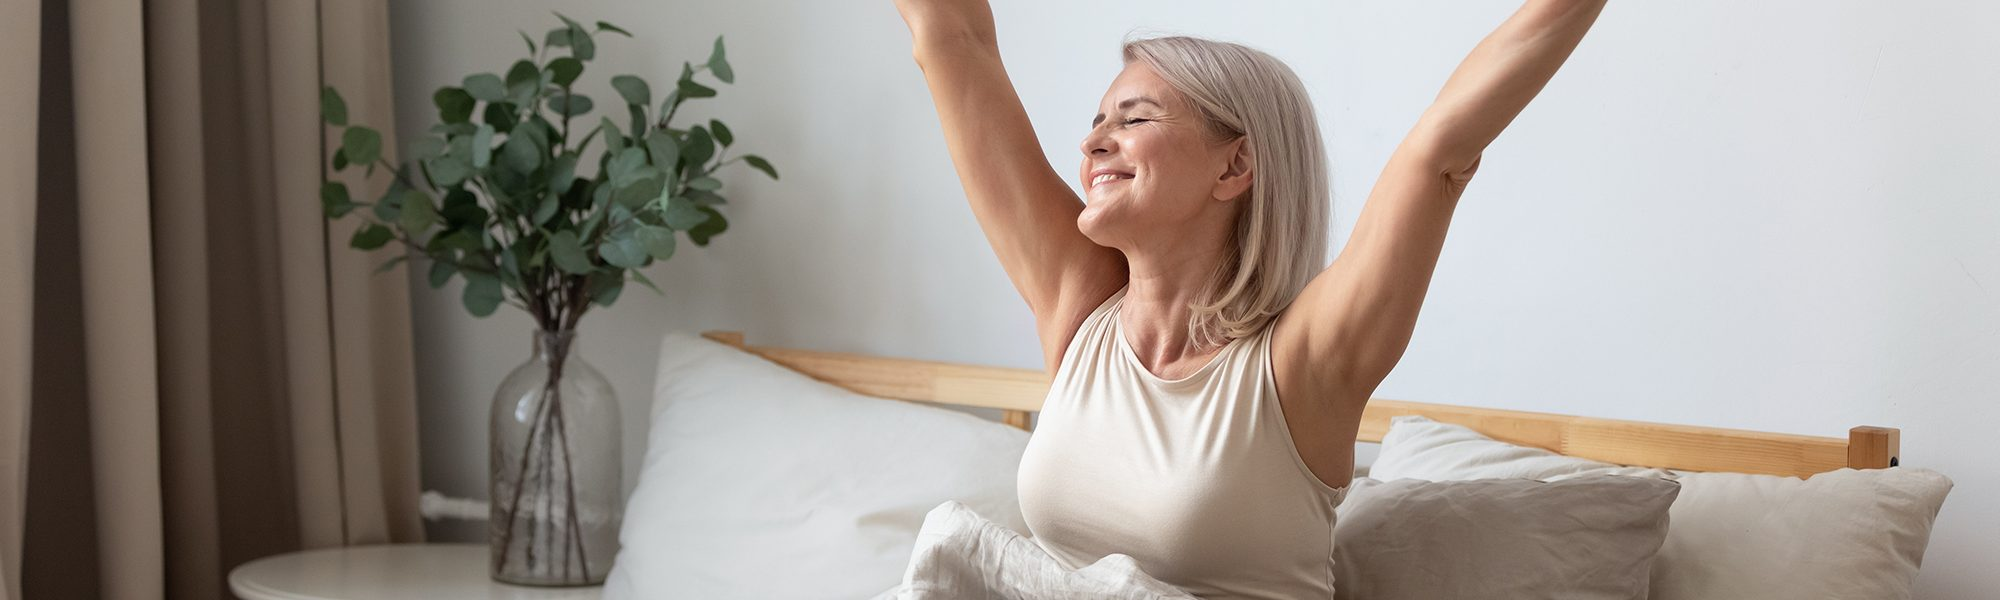 Happy mature woman stretching in bed waking up happy concept